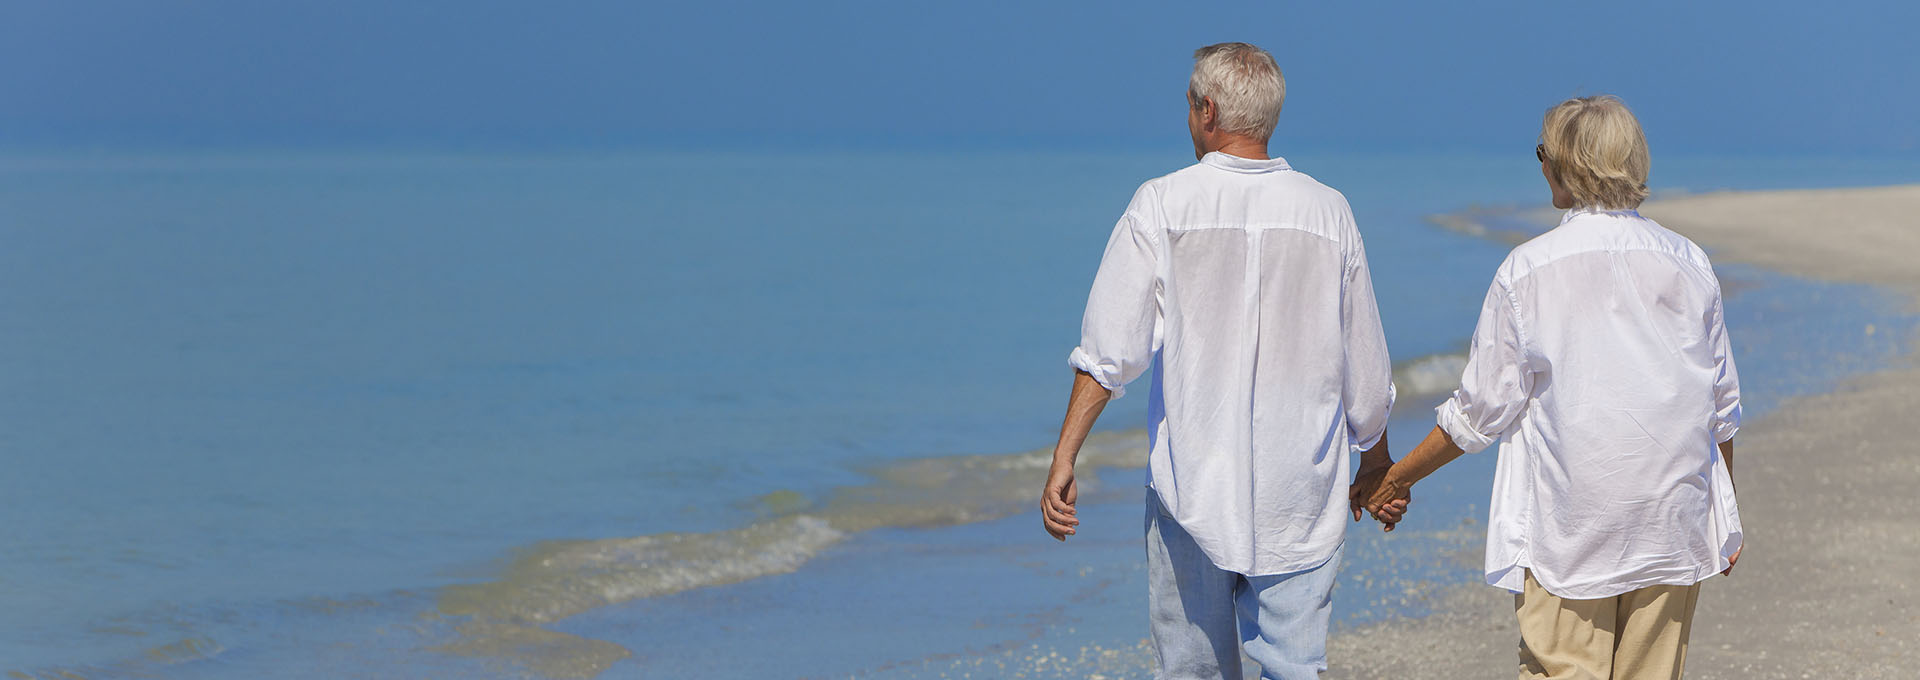 Senior man and woman couple holding hands walking on a deserted